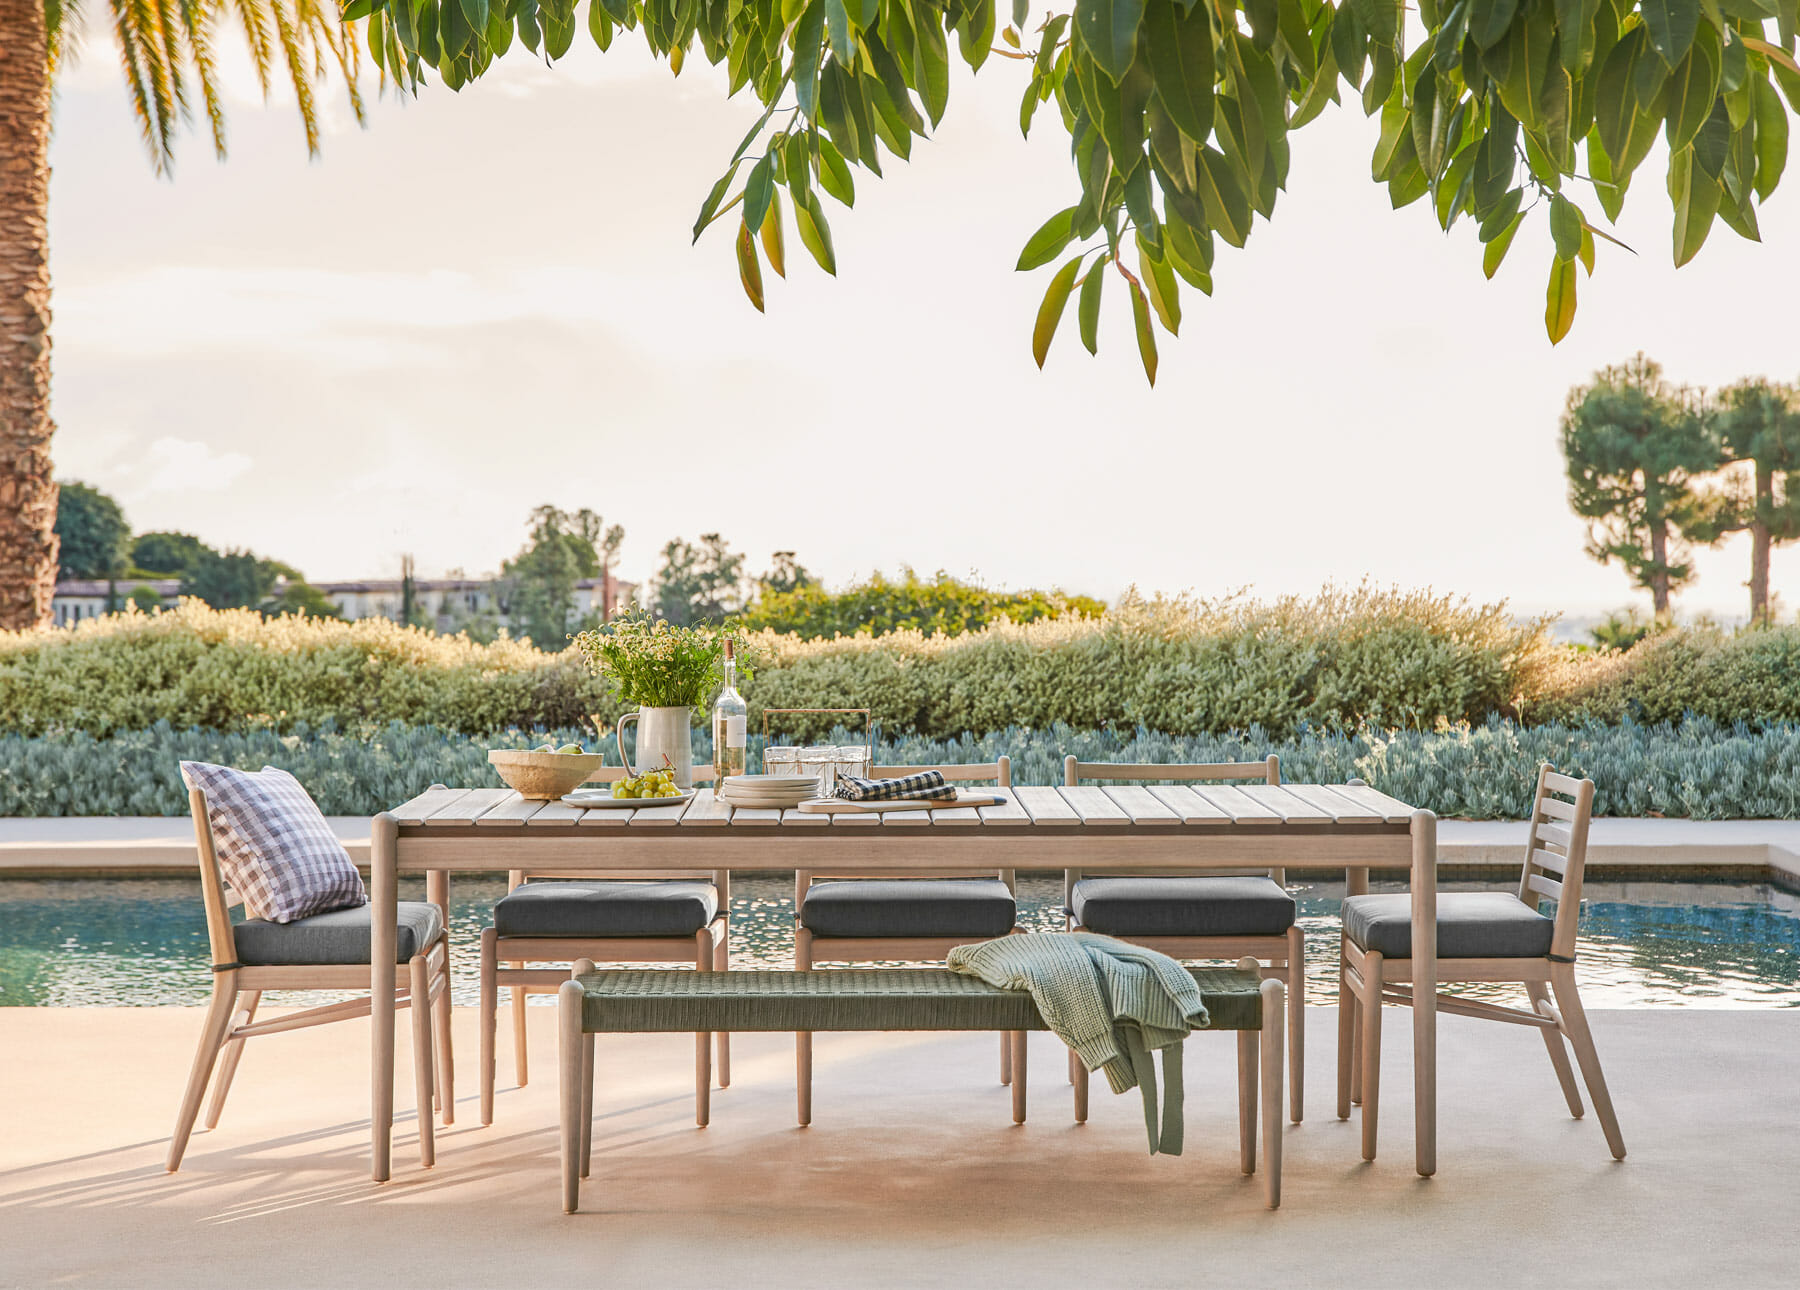 Article's eucalyptus Lagora Collection is shown poolside with various greenery surrounding it.